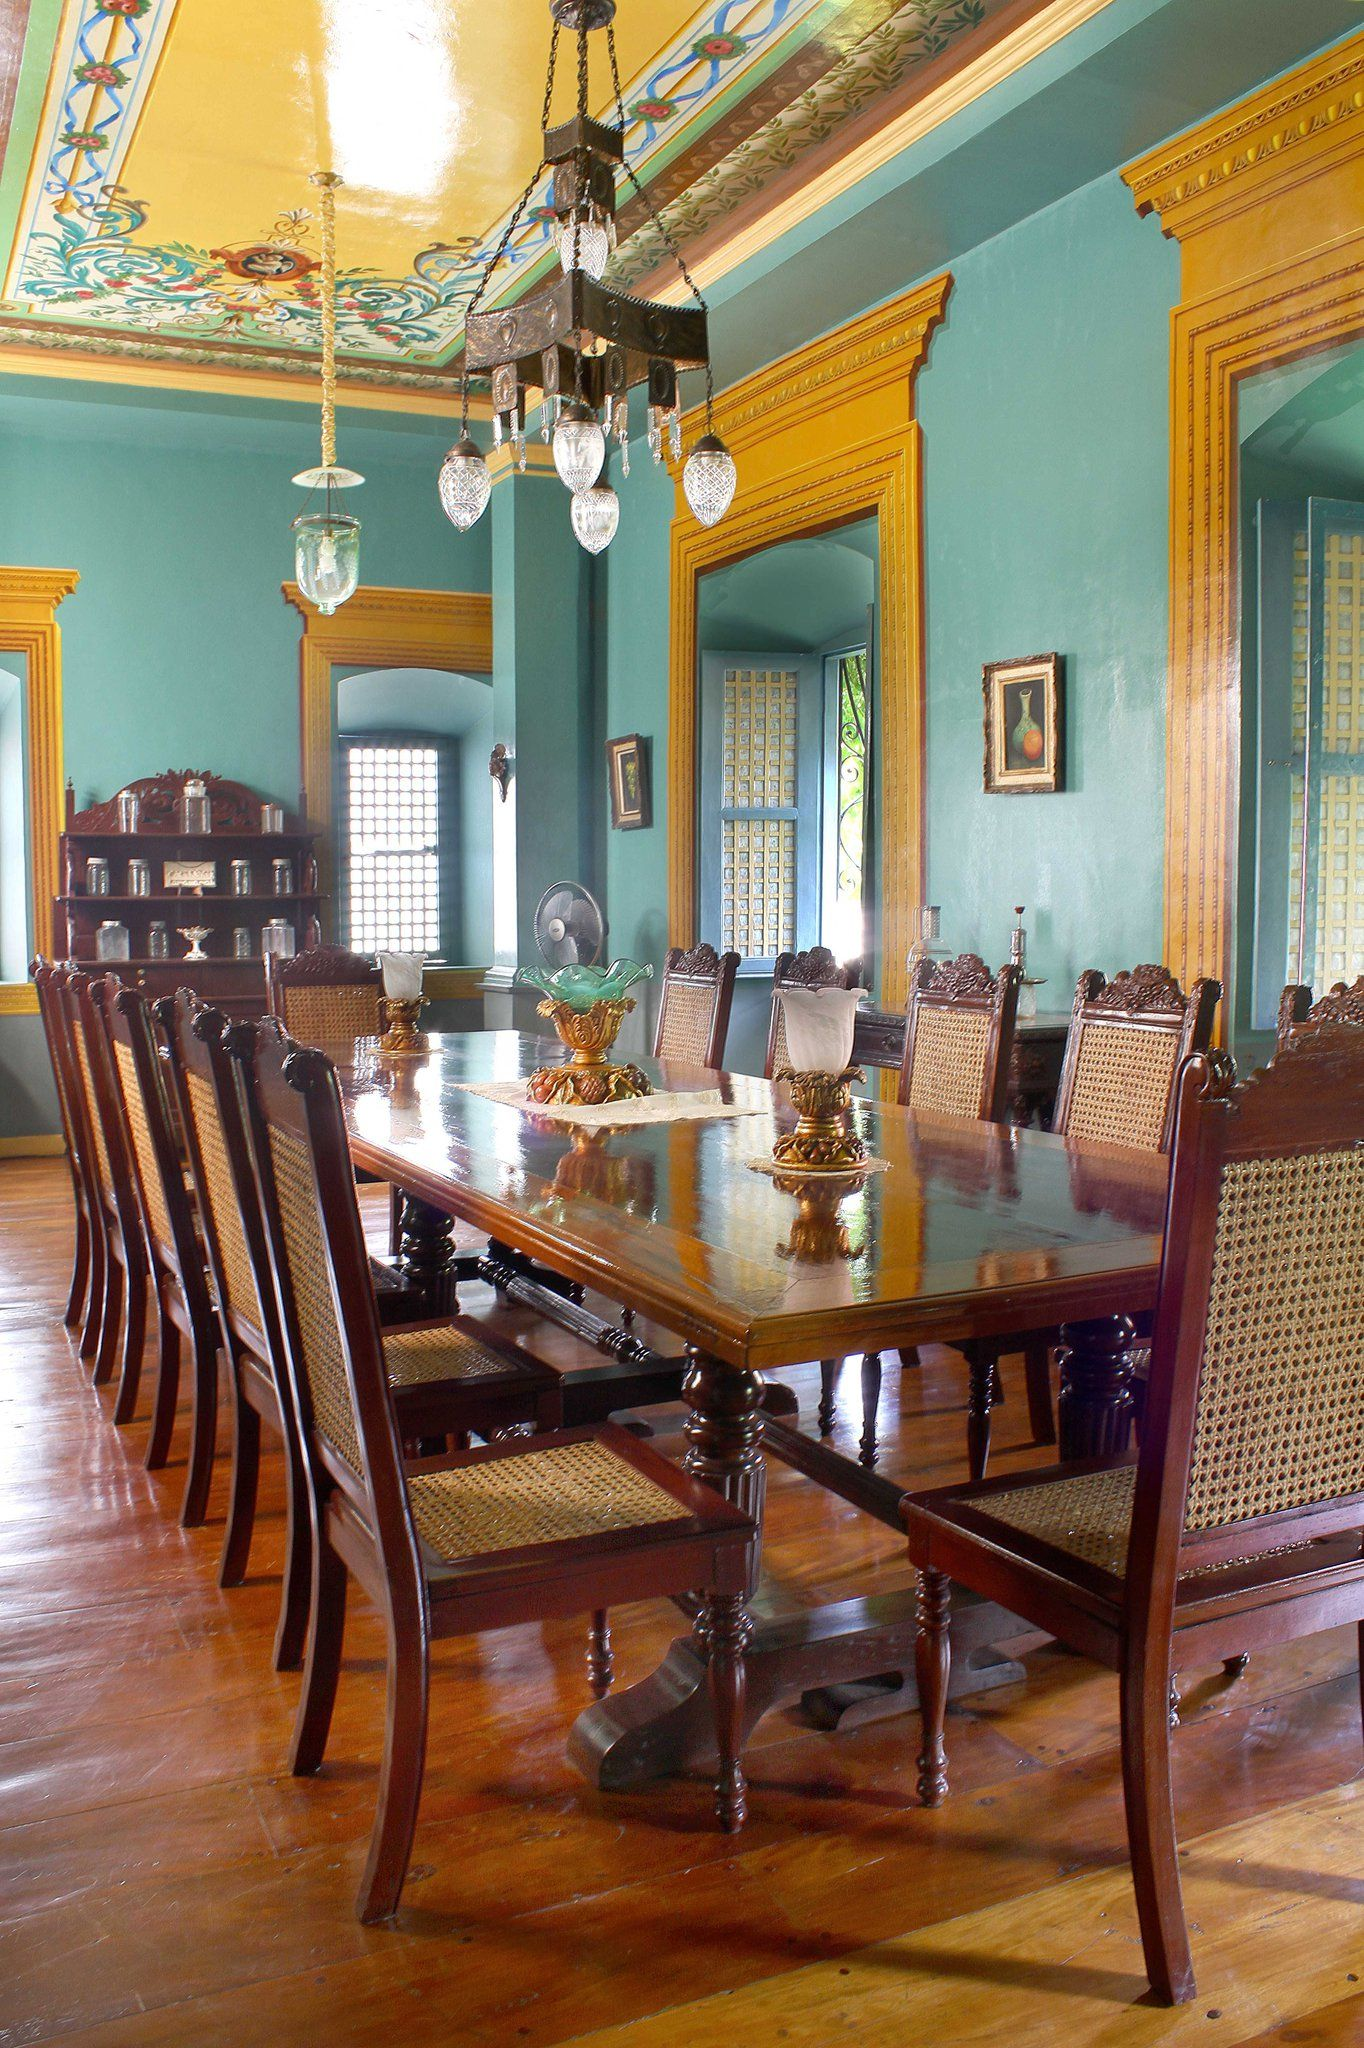 Filipino Home Styling. The Grand Dining Room of an